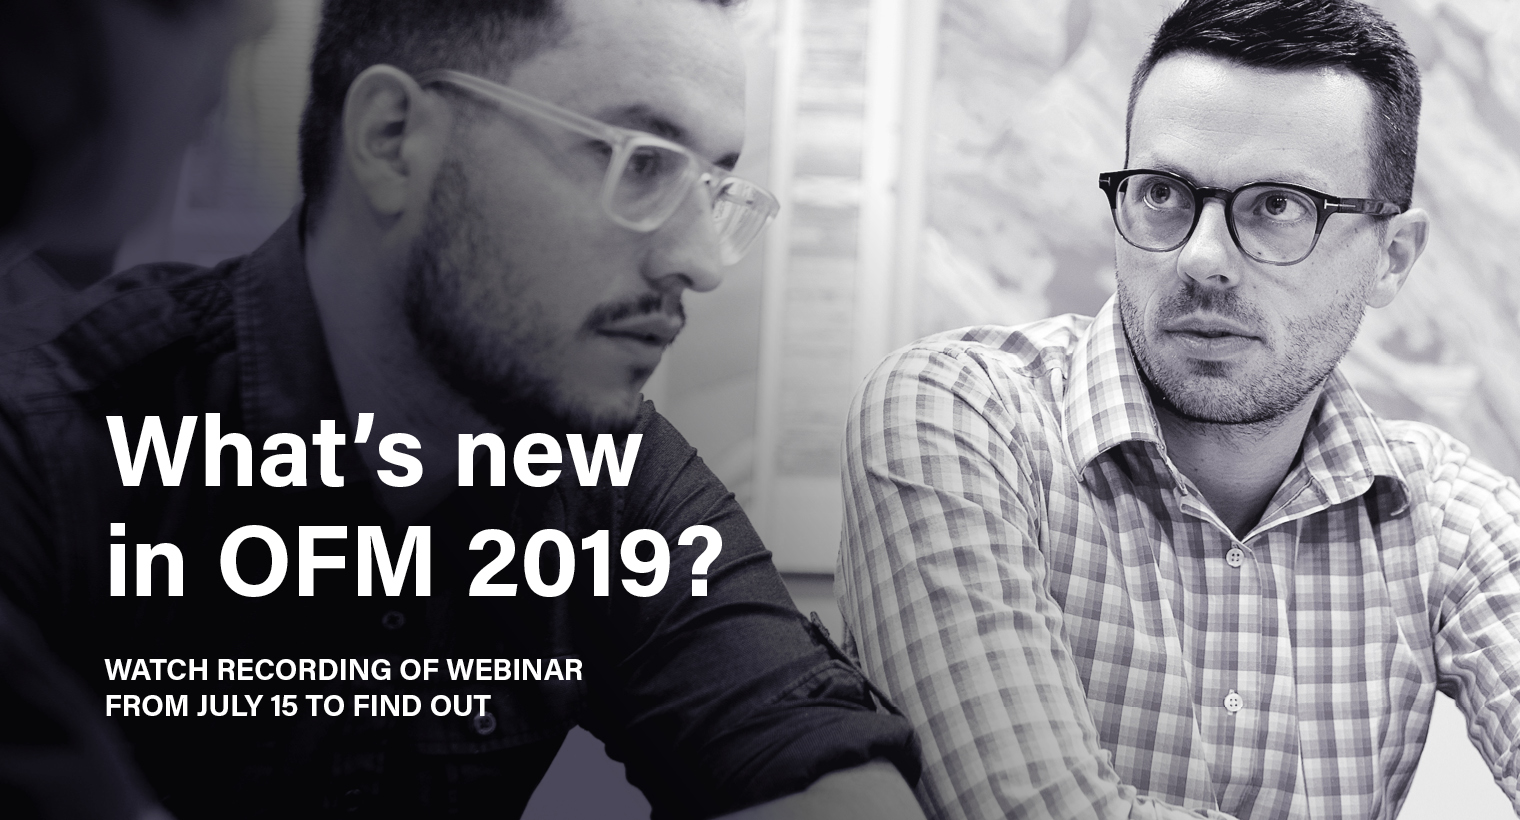 What's new in OFM 2019